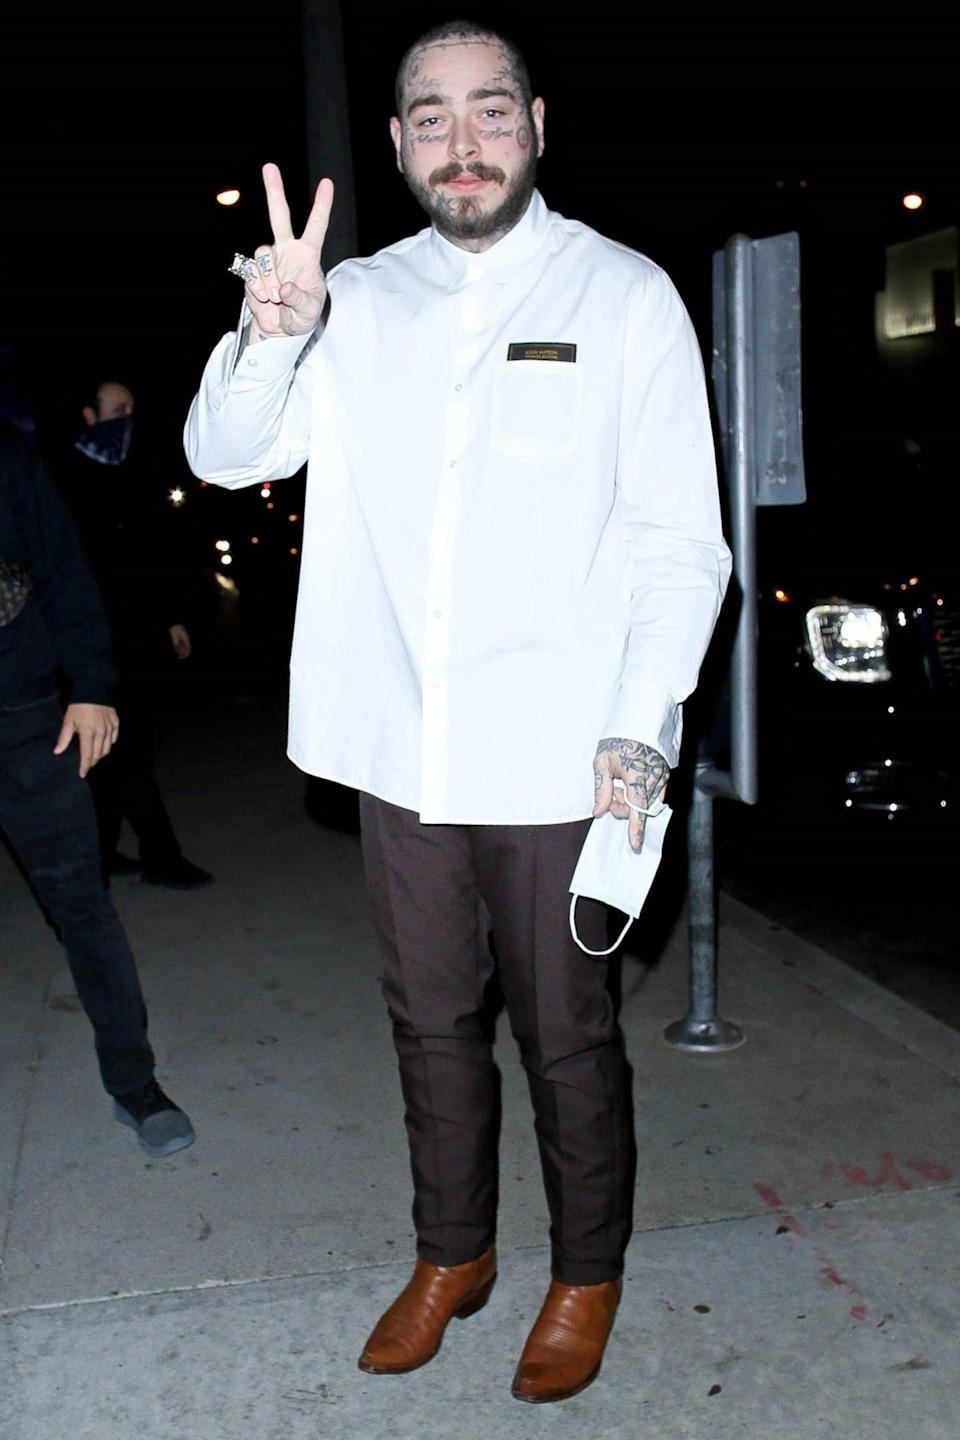 <p>Post Malone throws up a peace sign outside of BOA Steakhouse on Friday in West Hollywood.</p>